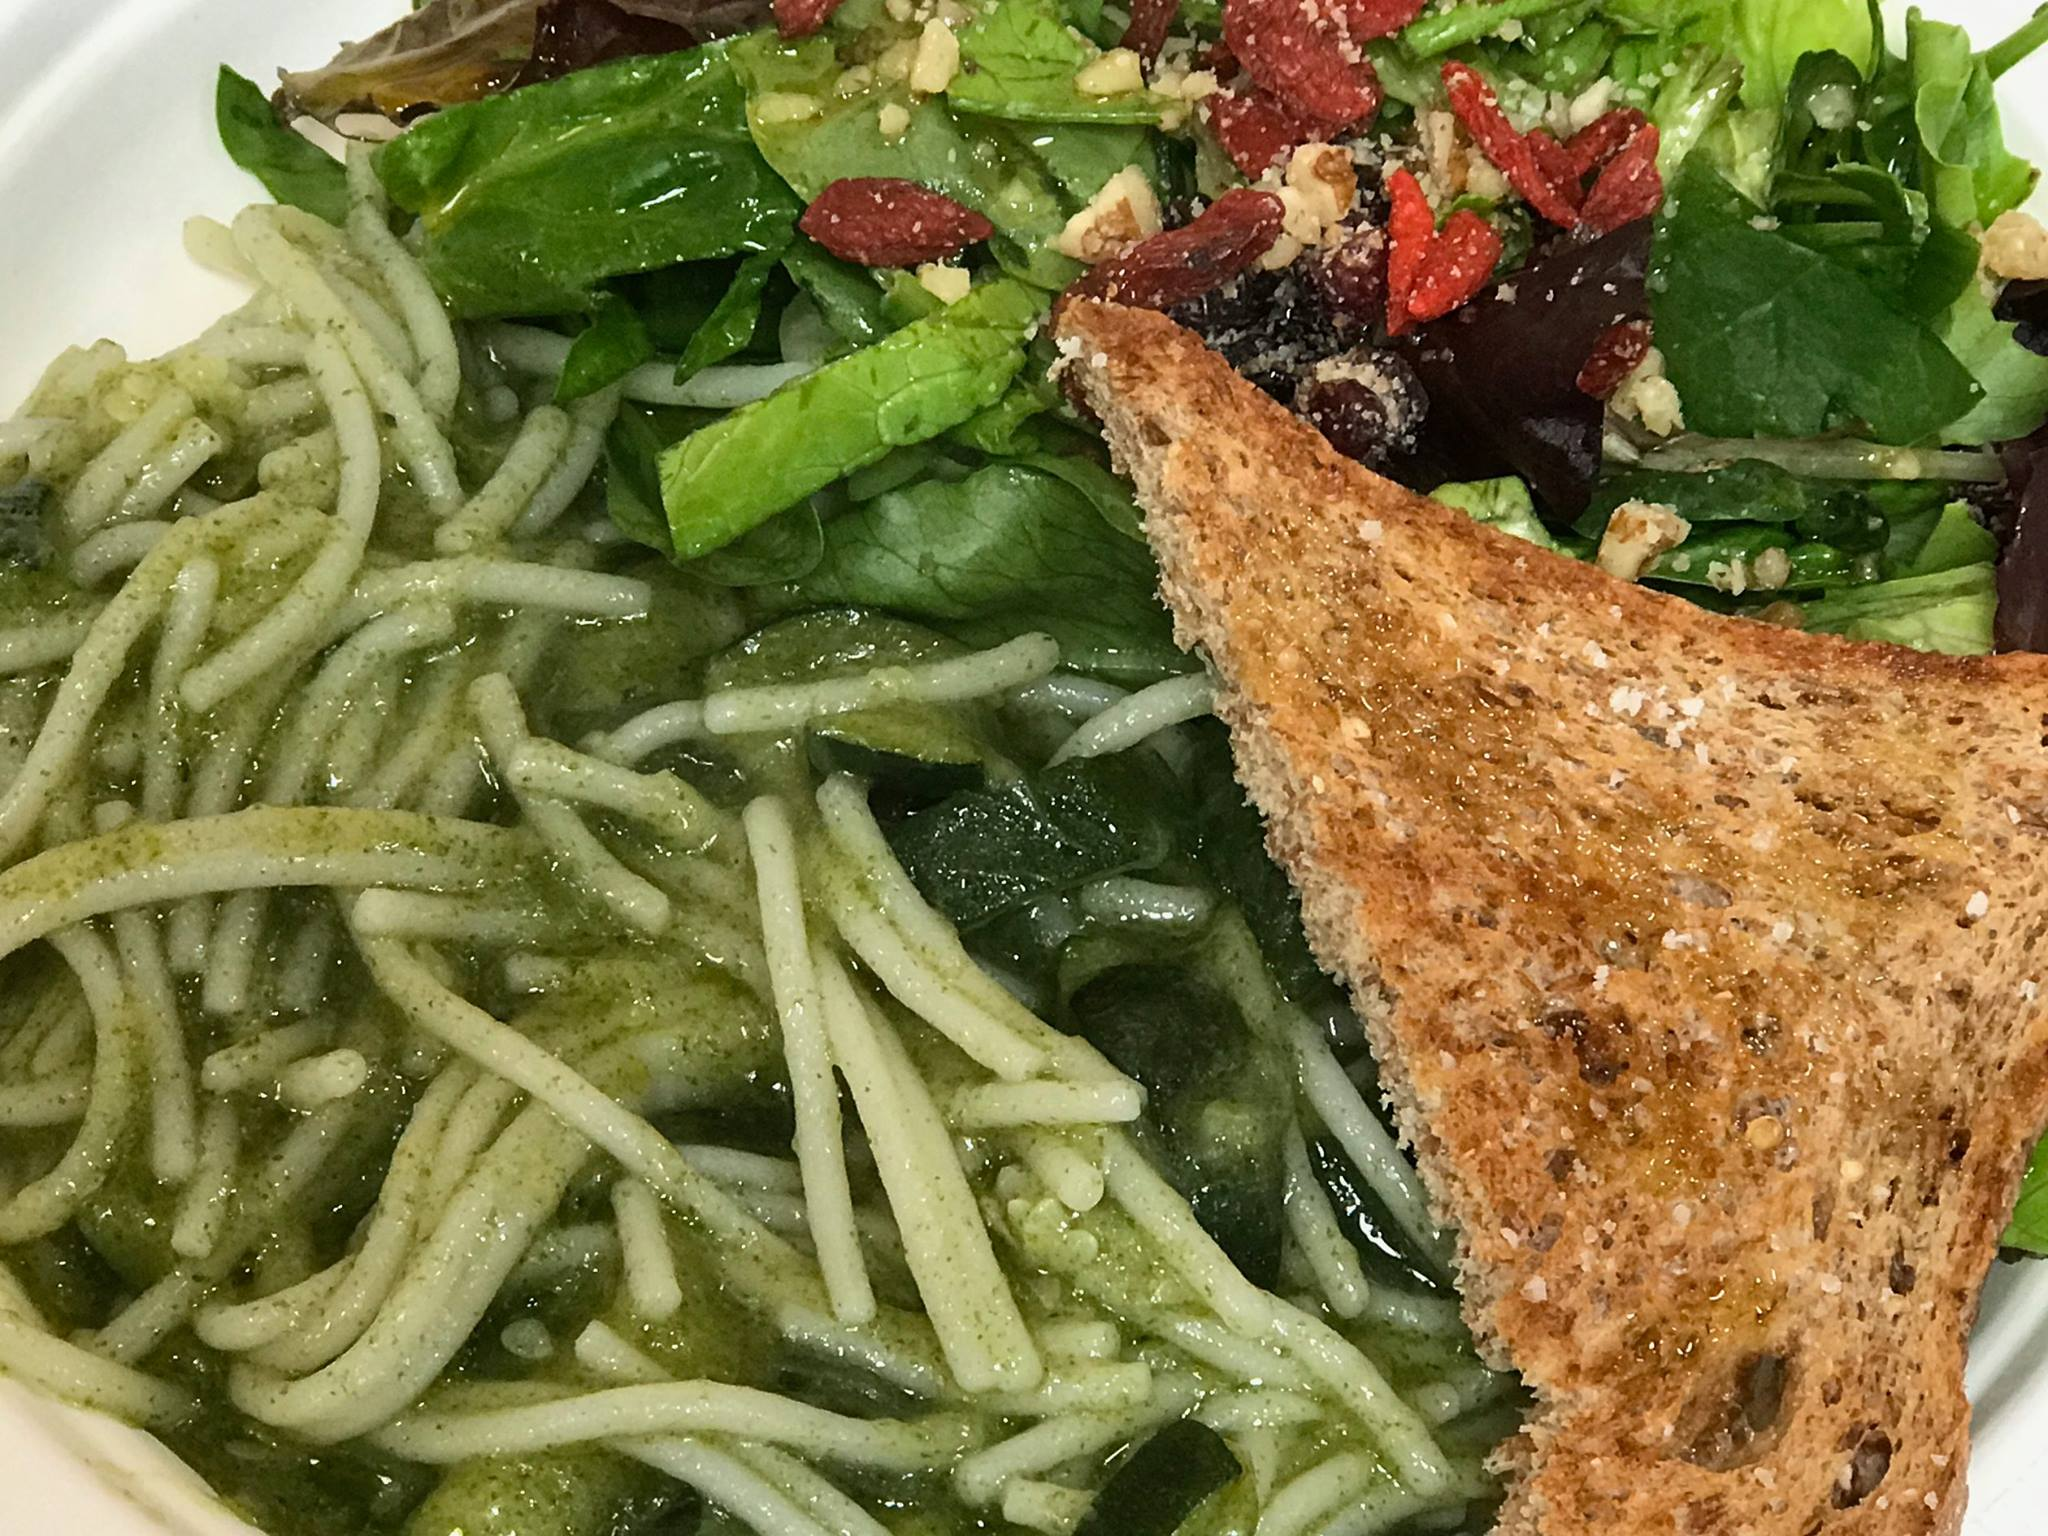 West Texas RX Basil and Zucchini Spaghetti